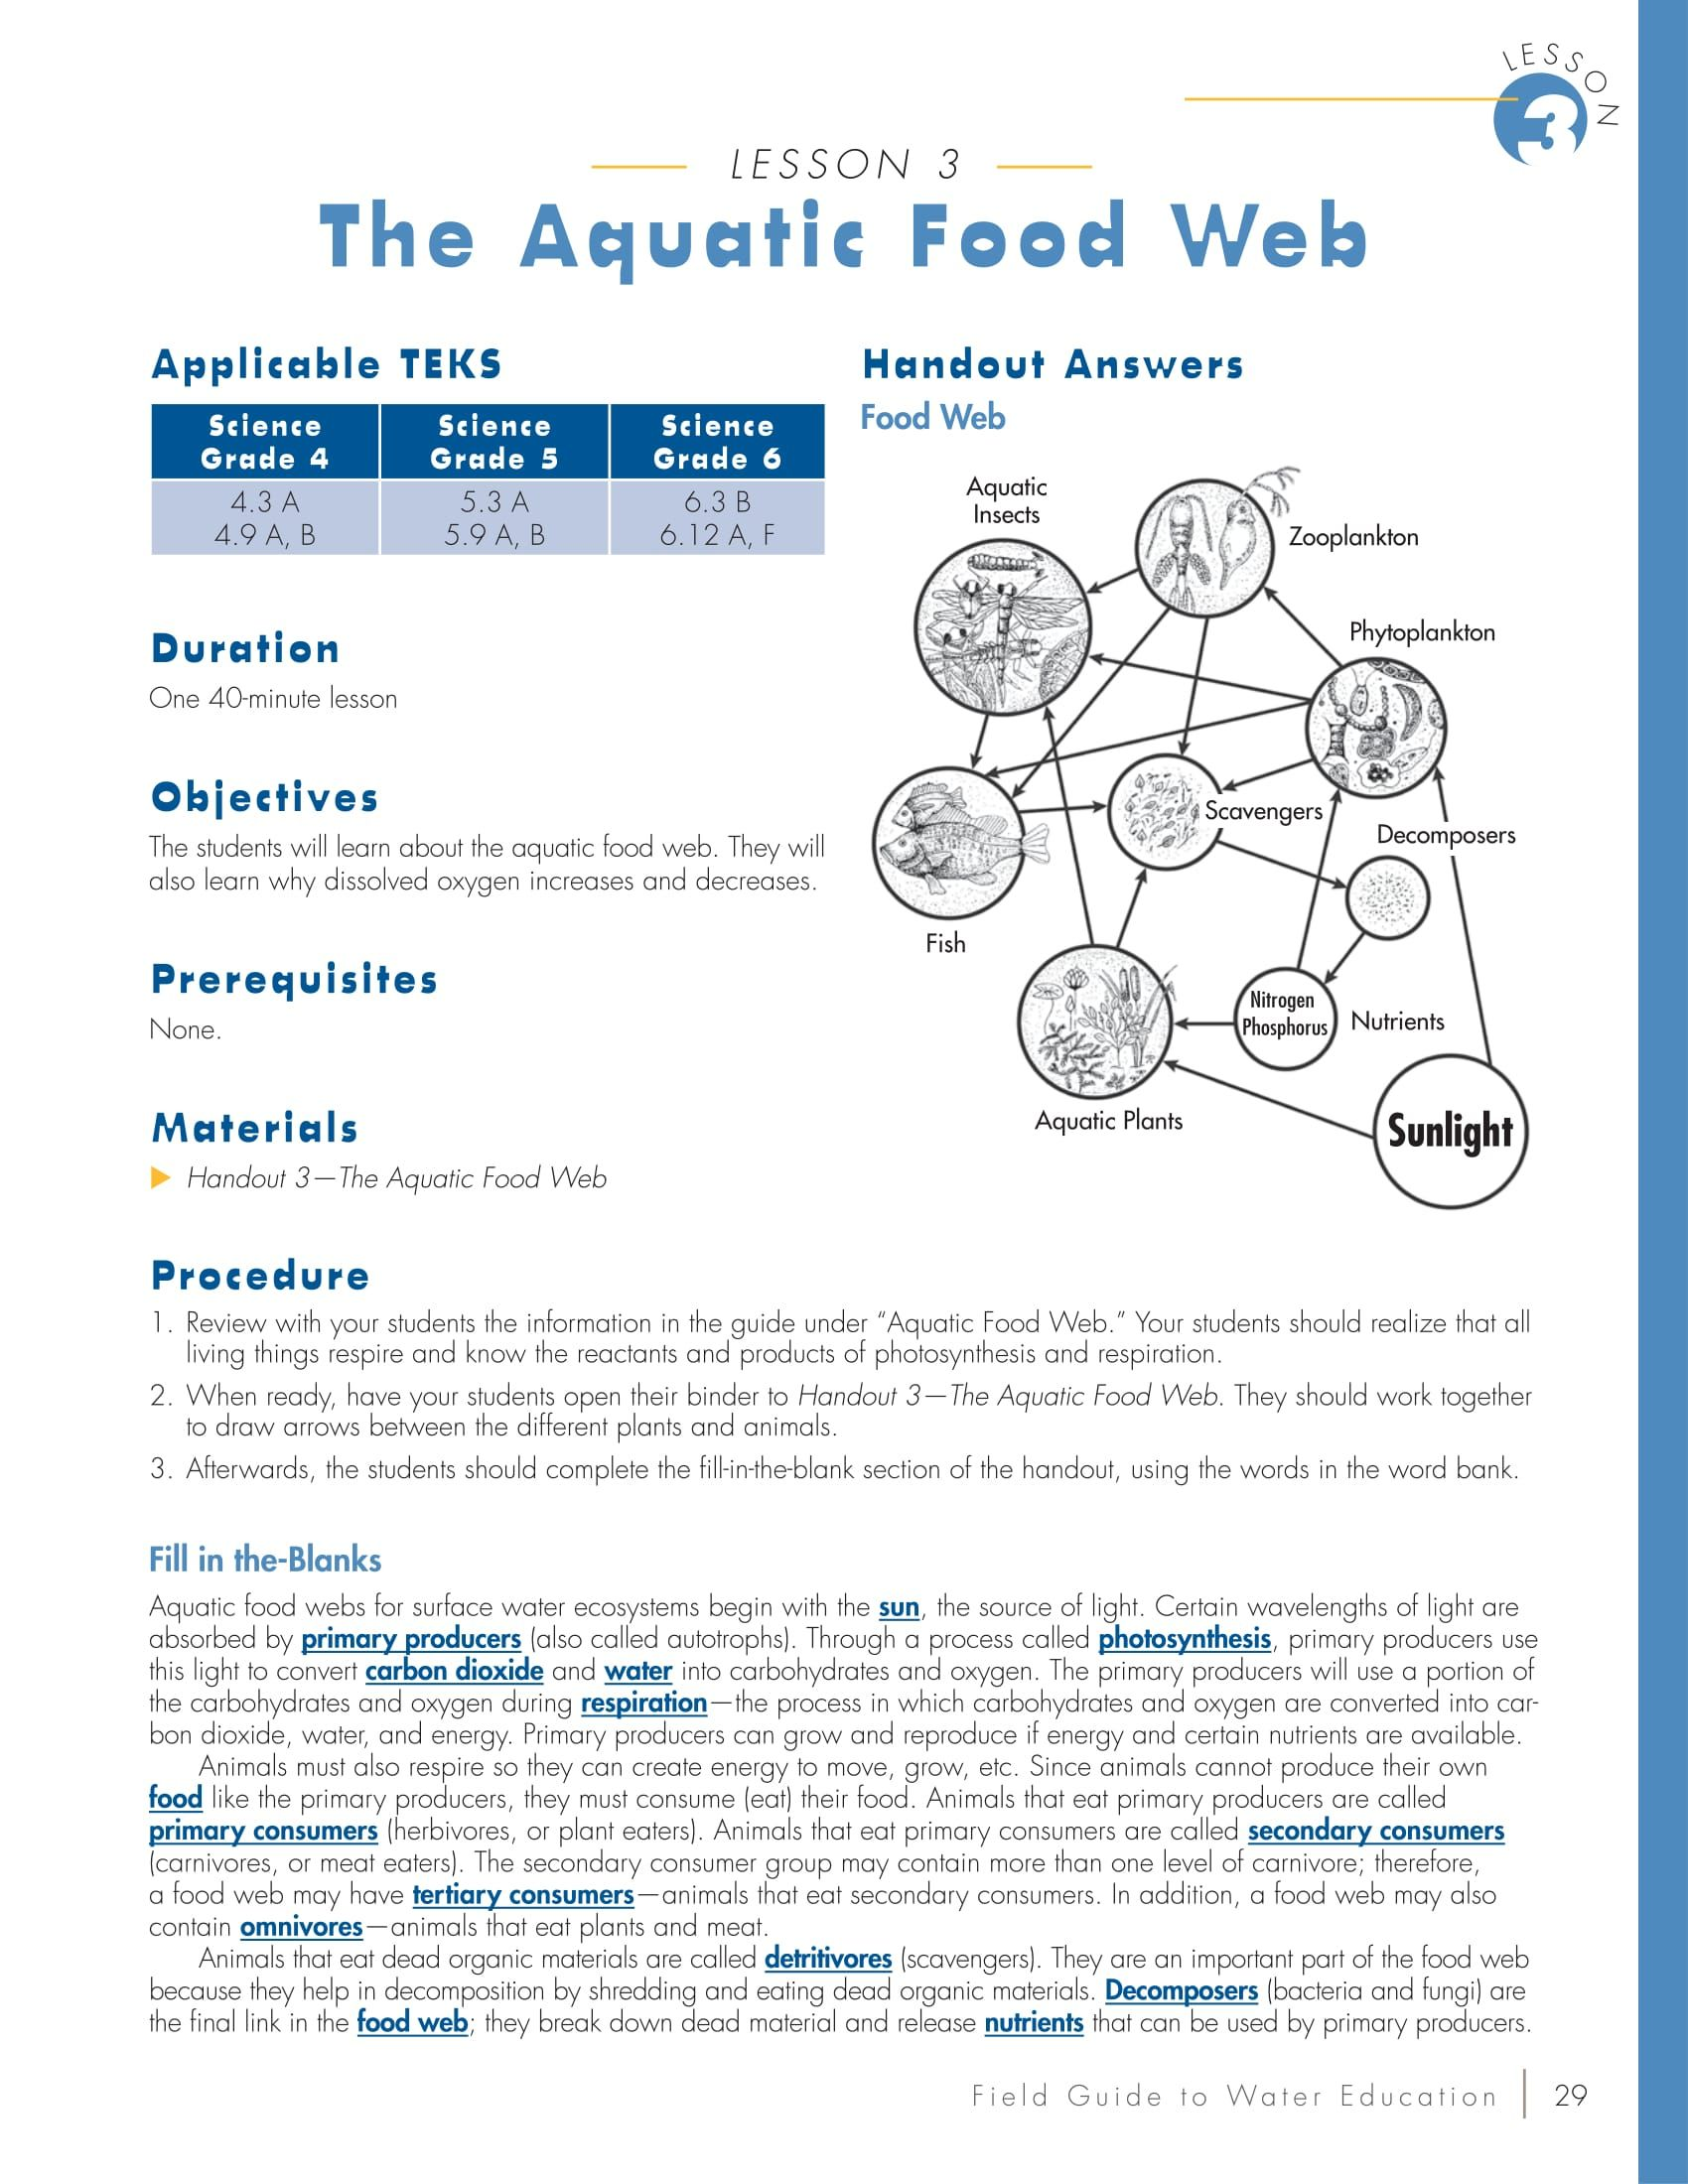 The Aquatic Food Web Lesson Plan